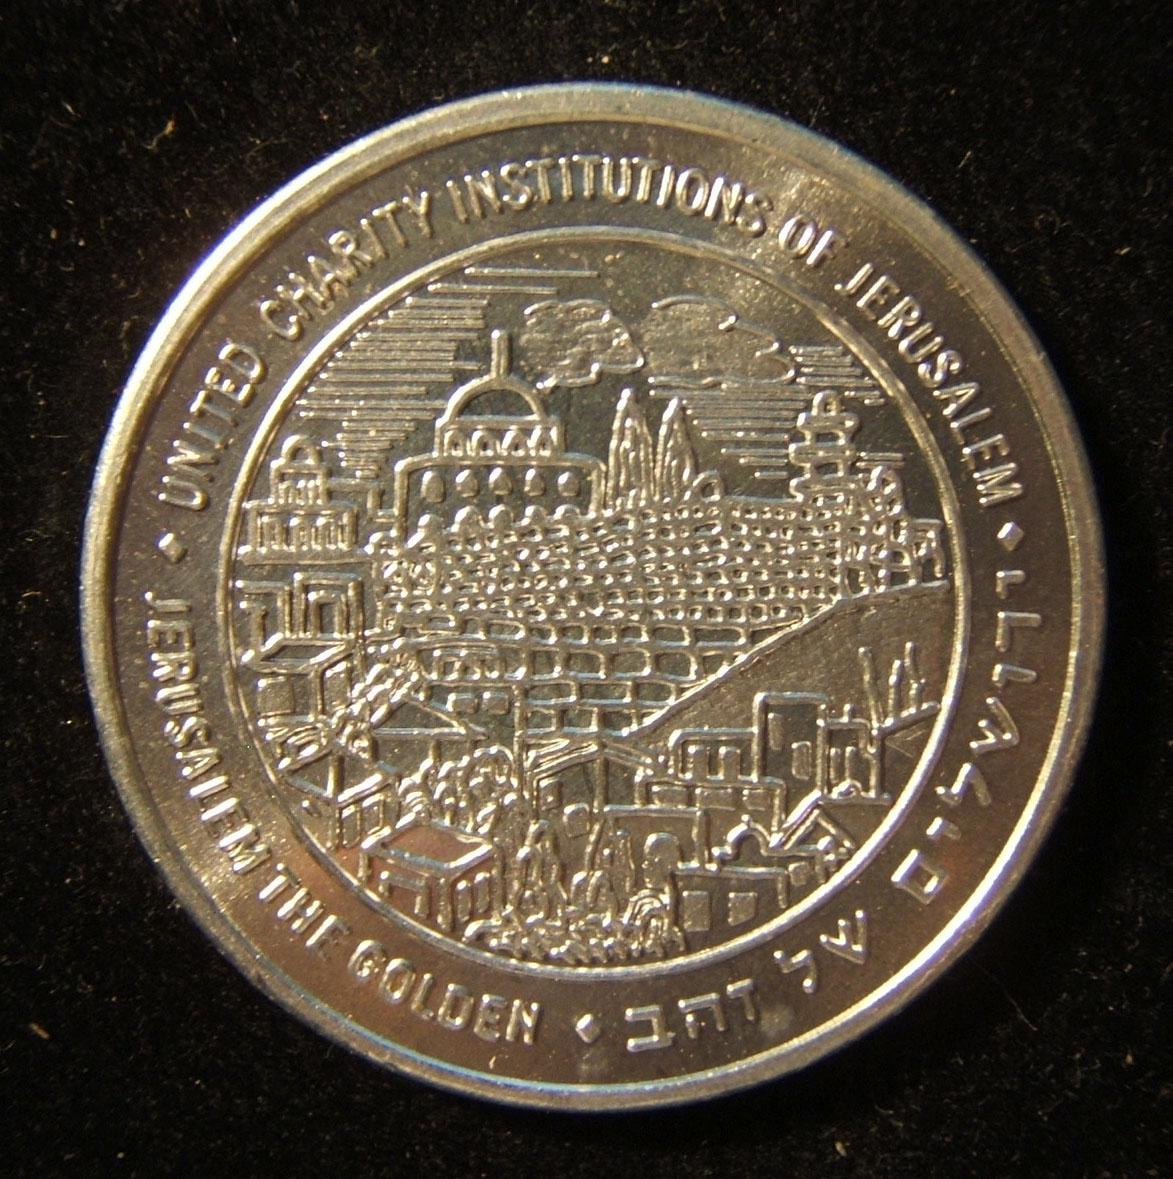 Israel/US: United Charity Institutions of Jerusalem aluminum token in Hebrew & English, with image of